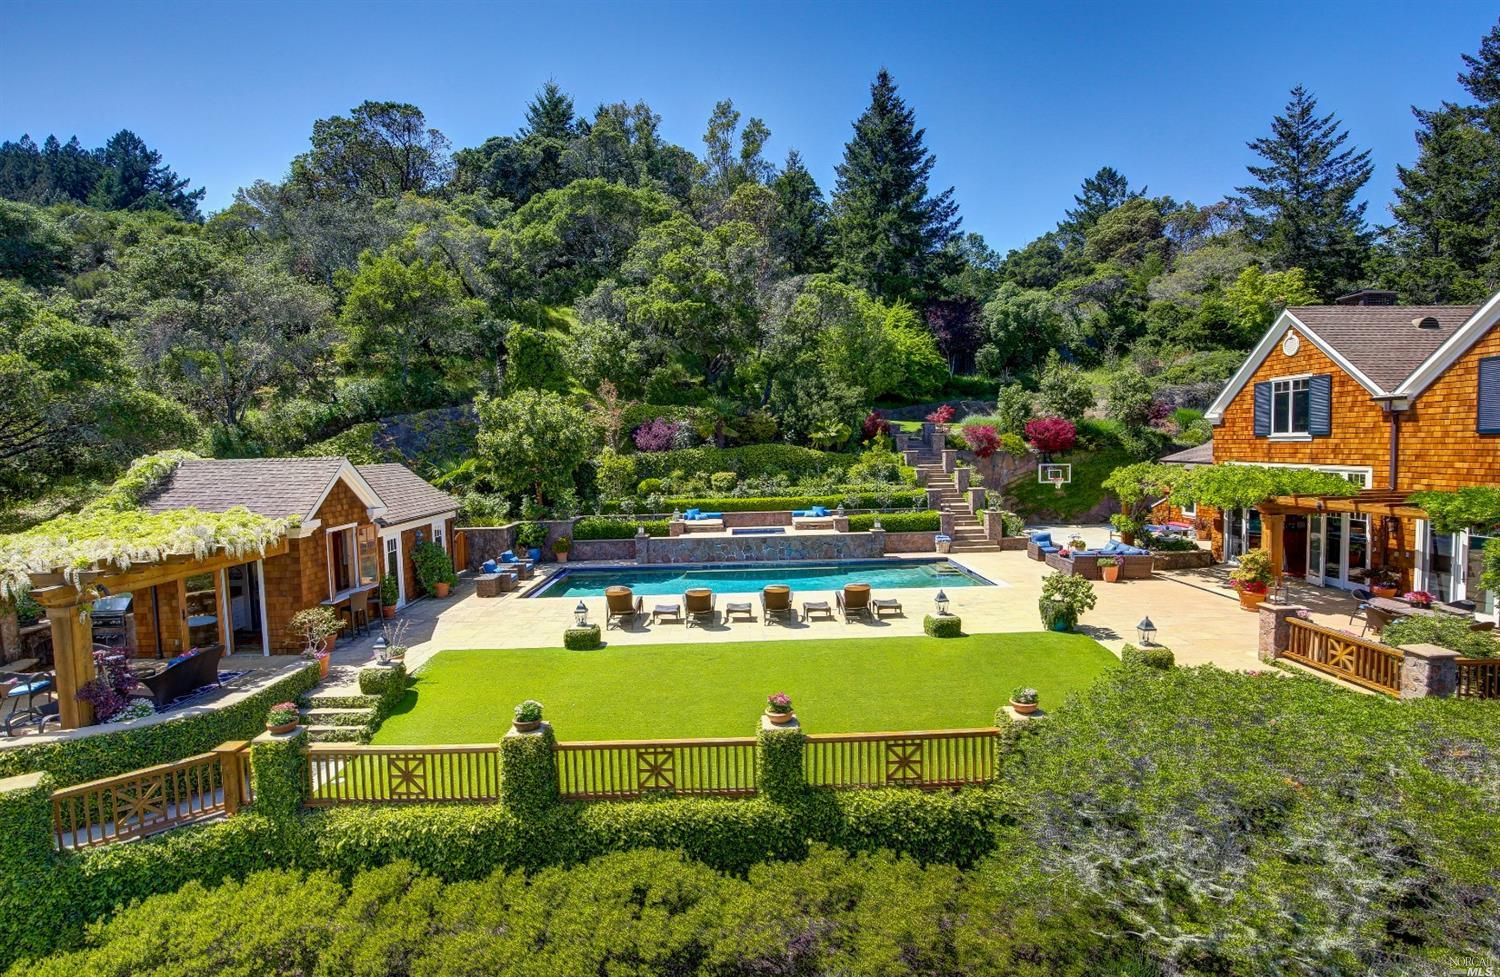 $10,500,000 - BUYER 351 Evergreen Drive, Kentfield